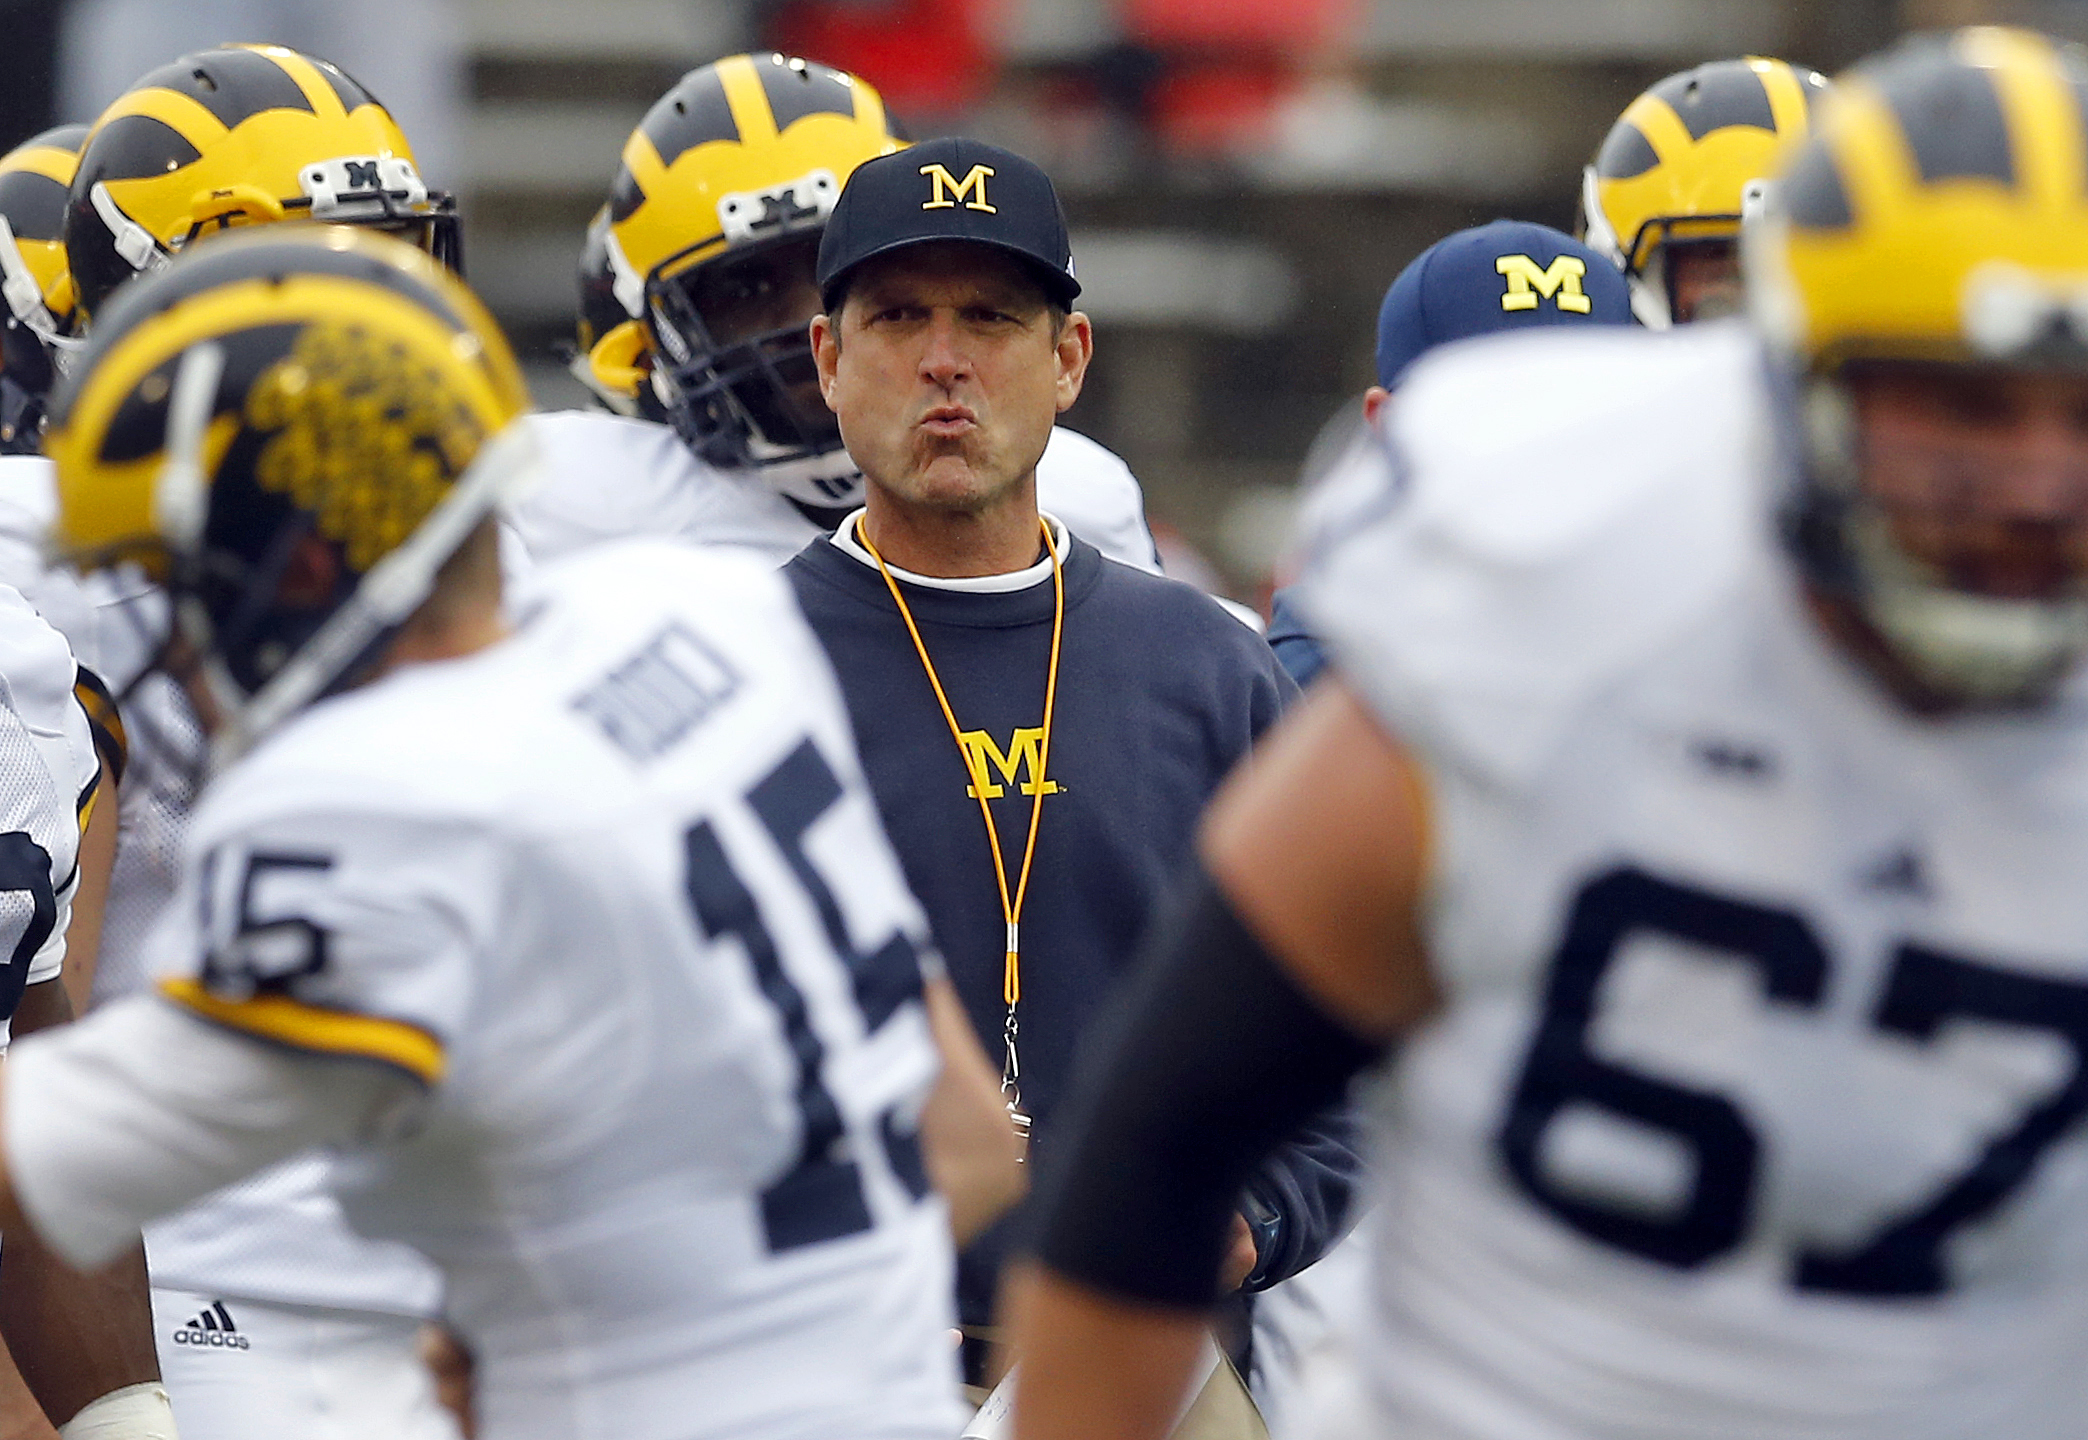 Michigan head coach Jim Harbaugh watches his players warm up before an NCAA college football game against Maryland, Saturday, Oct. 3, 2015, in College Park, Md. (AP Photo/Patrick Semansky)